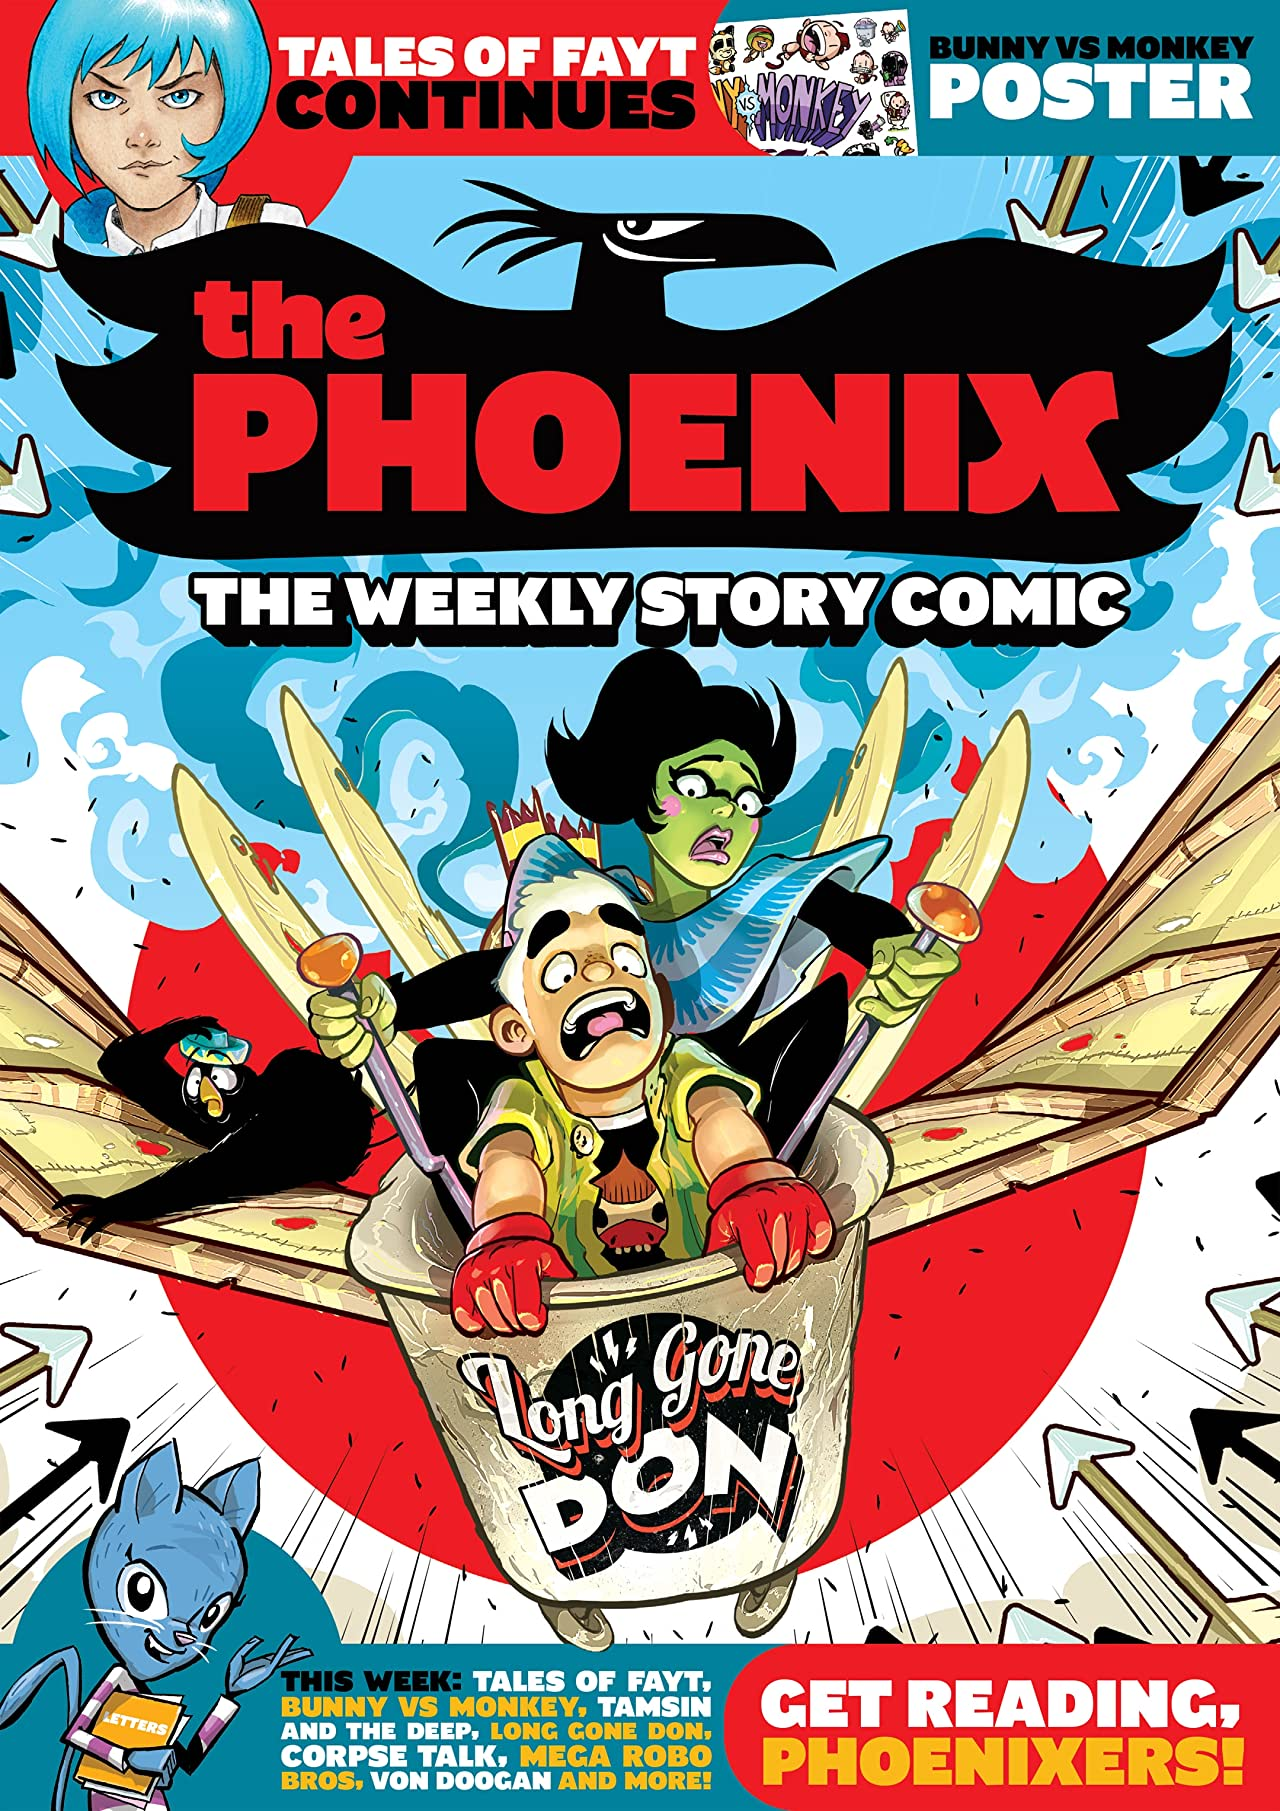 The Phoenix #134: The Weekly Story Comic